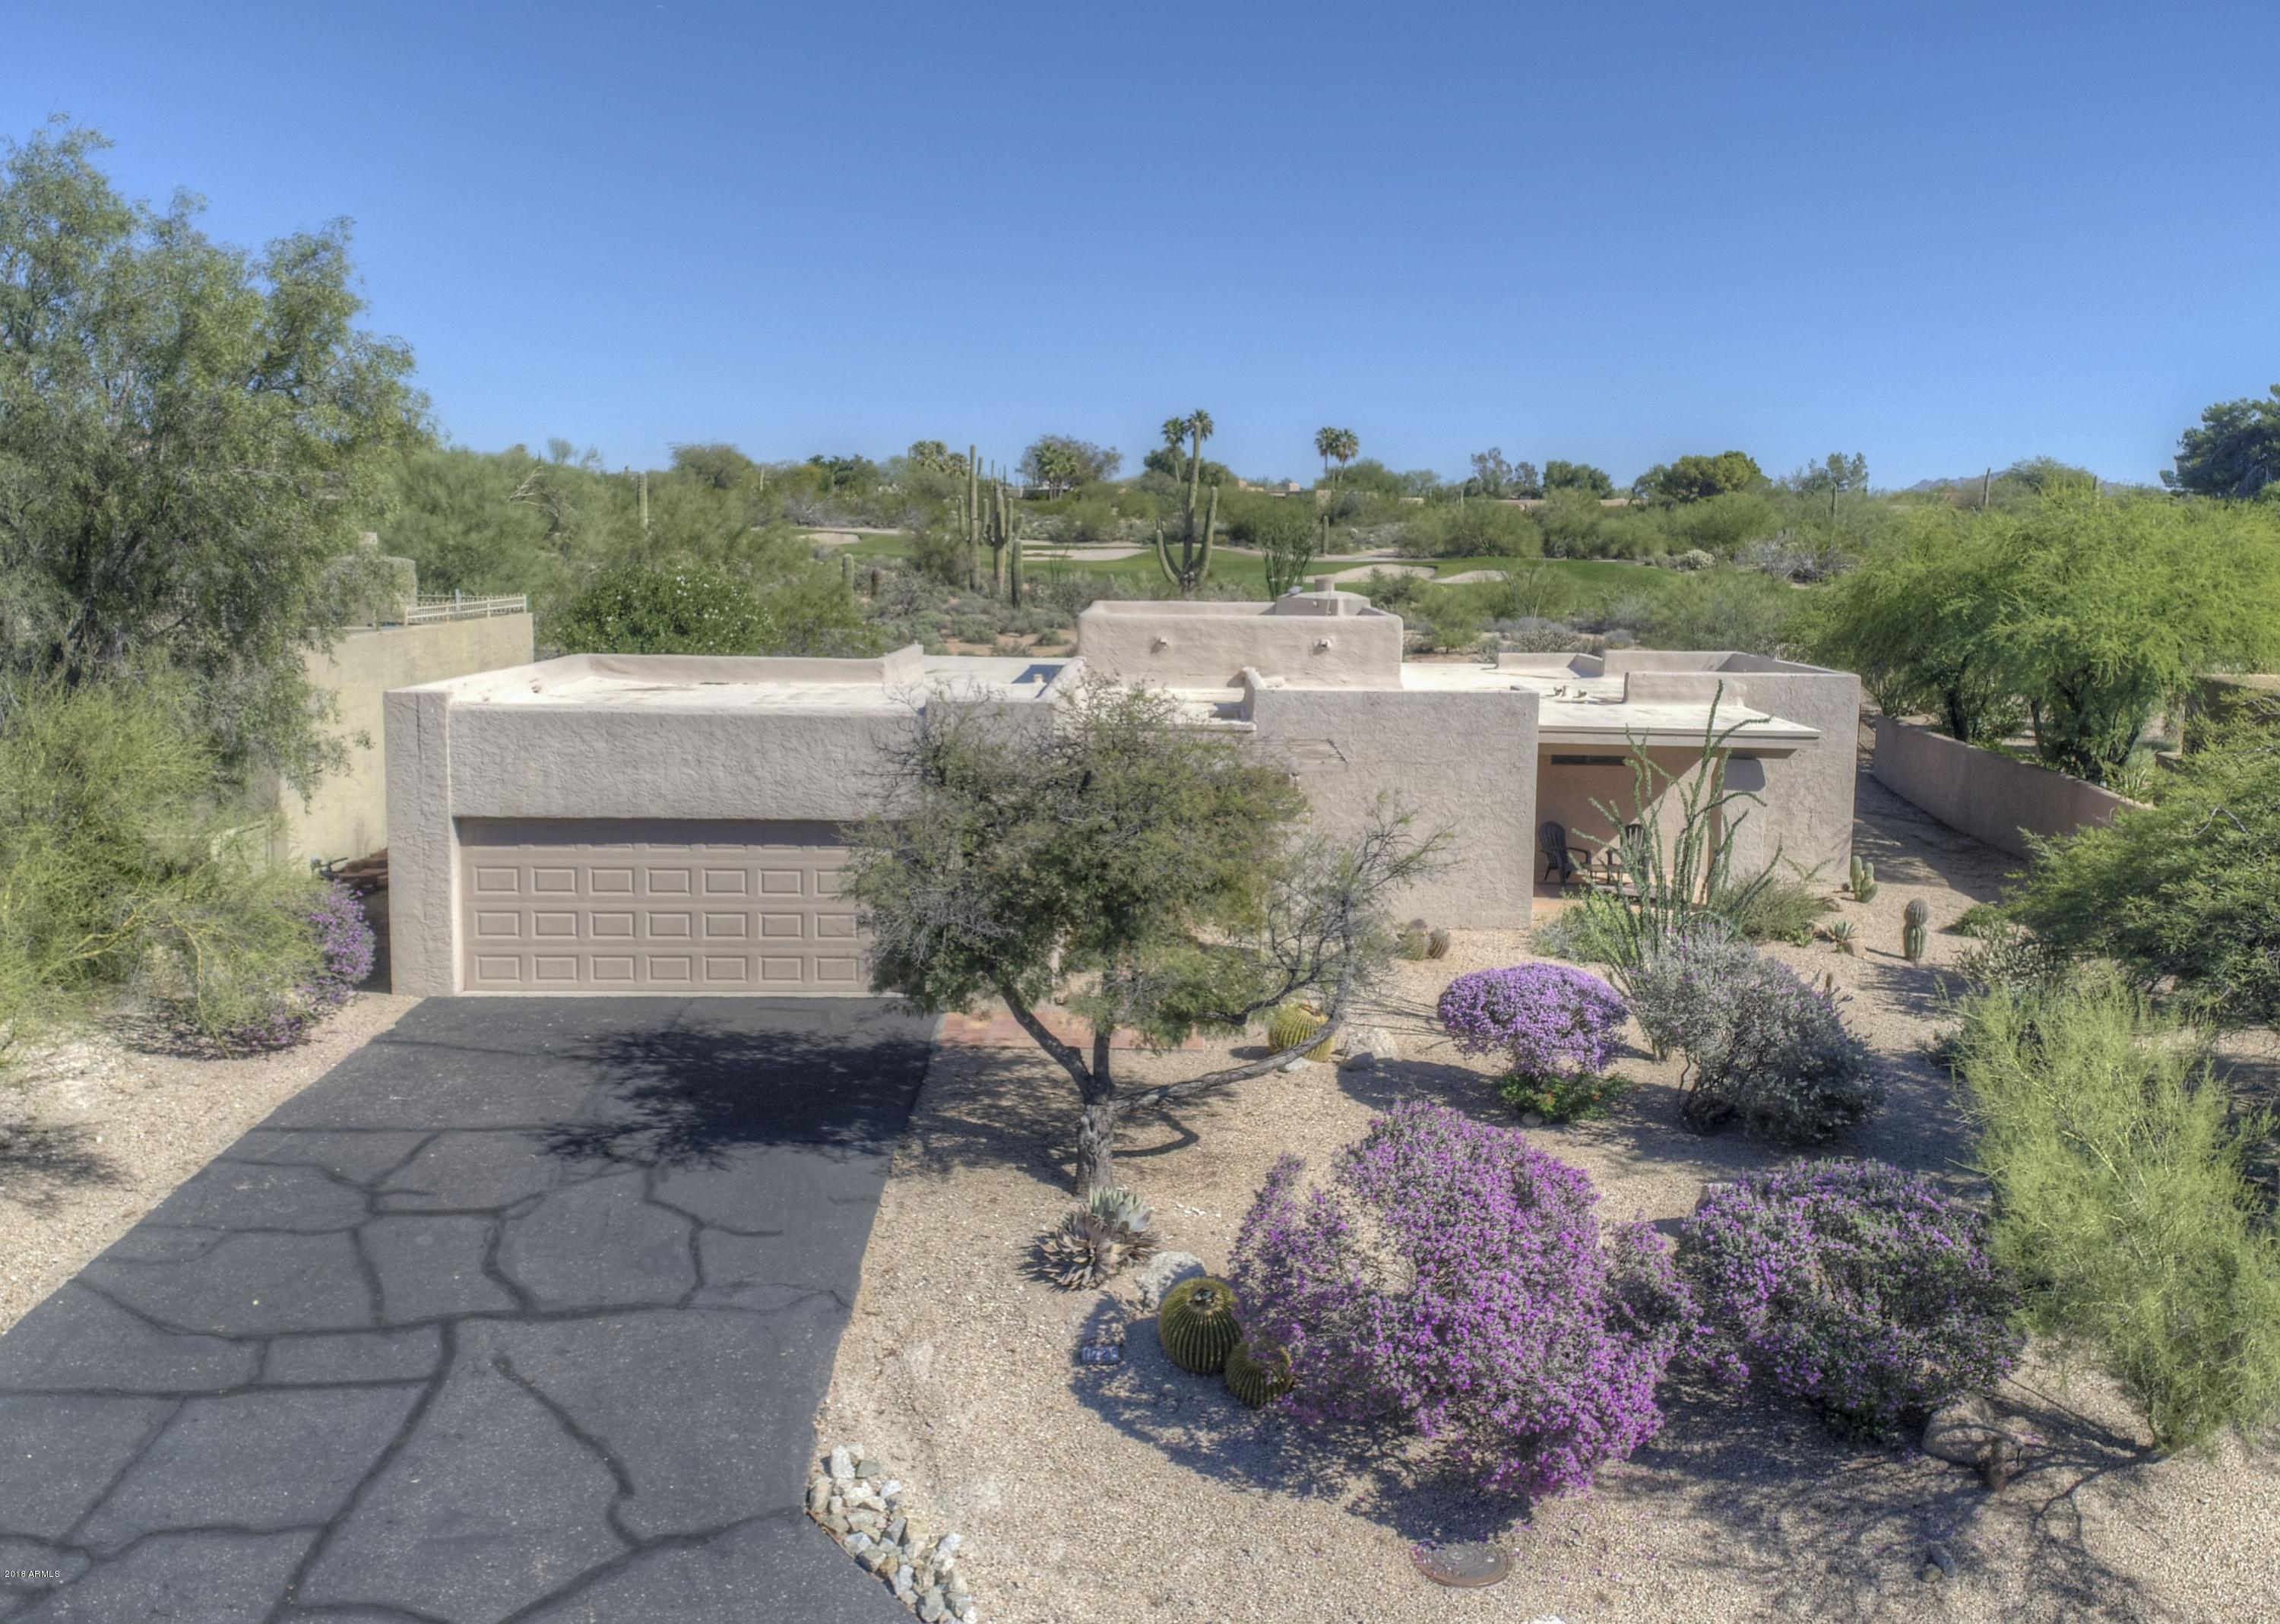 1725 E STAGHORN Lane, Carefree, AZ 85377, 2 Bedrooms Bedrooms, ,Residential Lease,For Rent,1725 E STAGHORN Lane,5861056